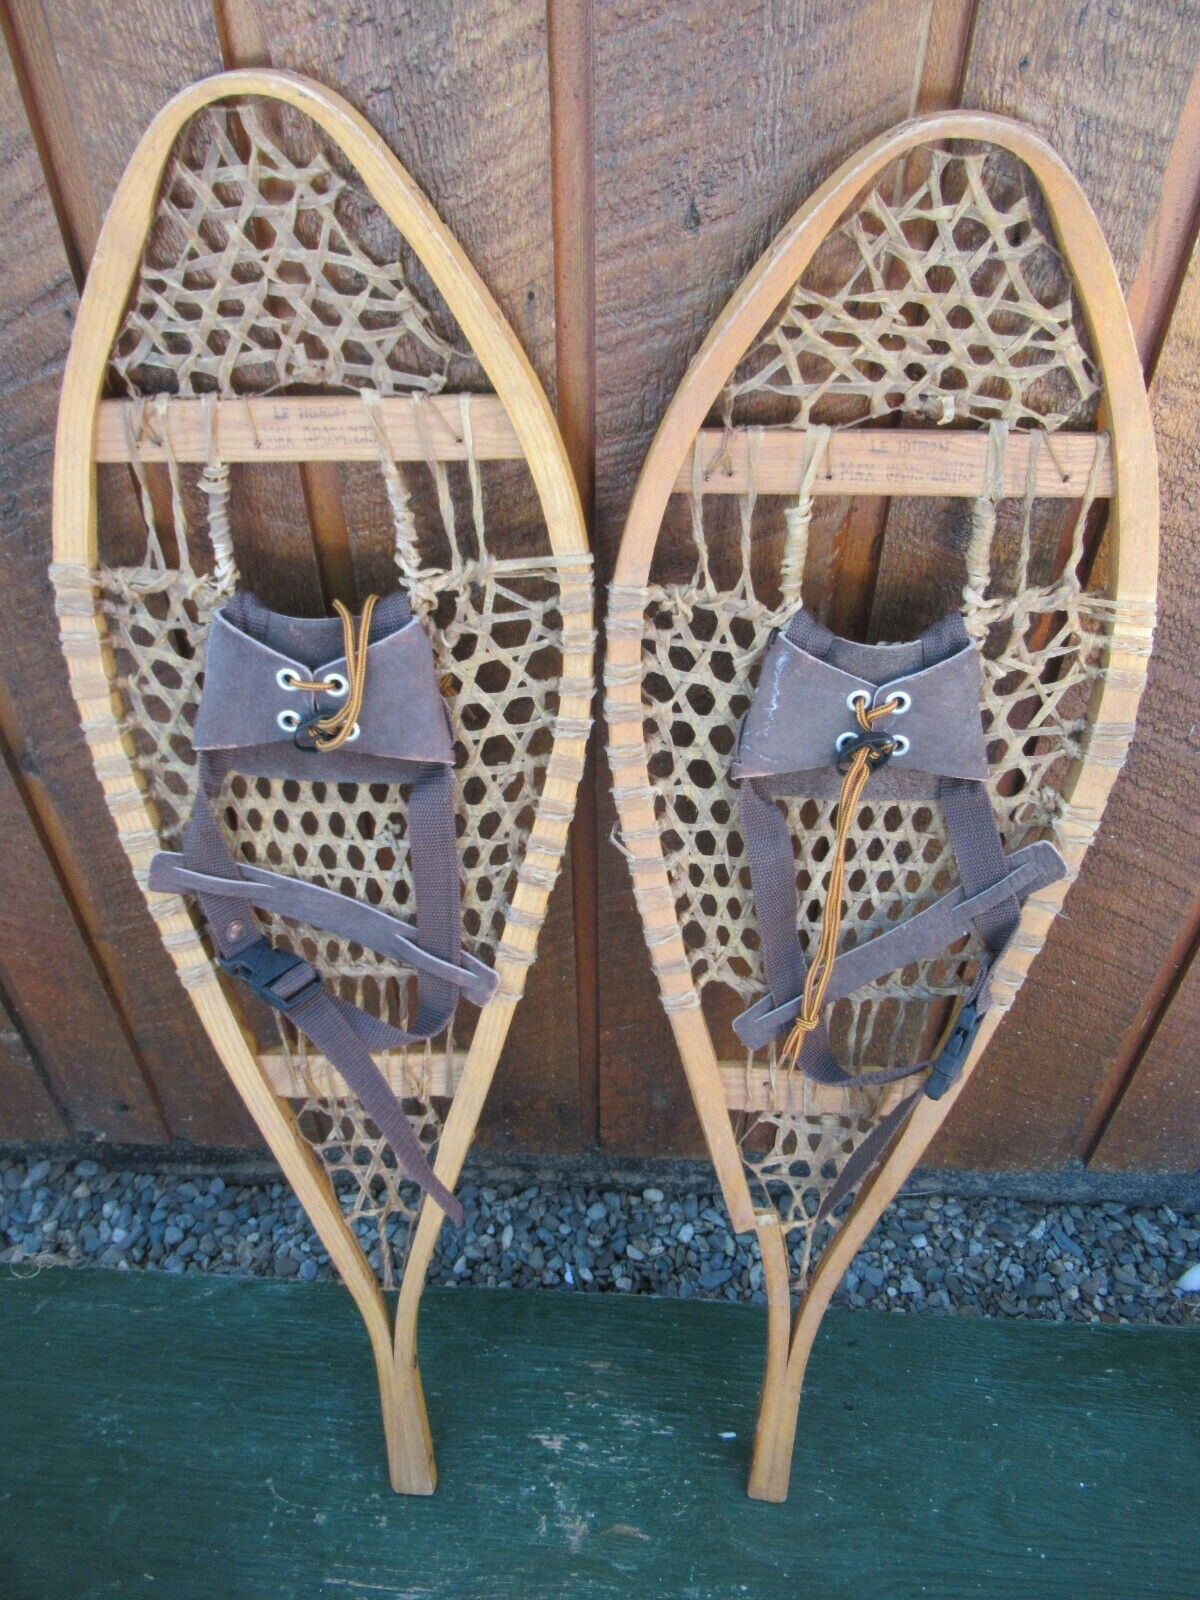 Snowschuhe 35  Long 11  Wide Has Leather Bindings Ready To Hang for Decoration